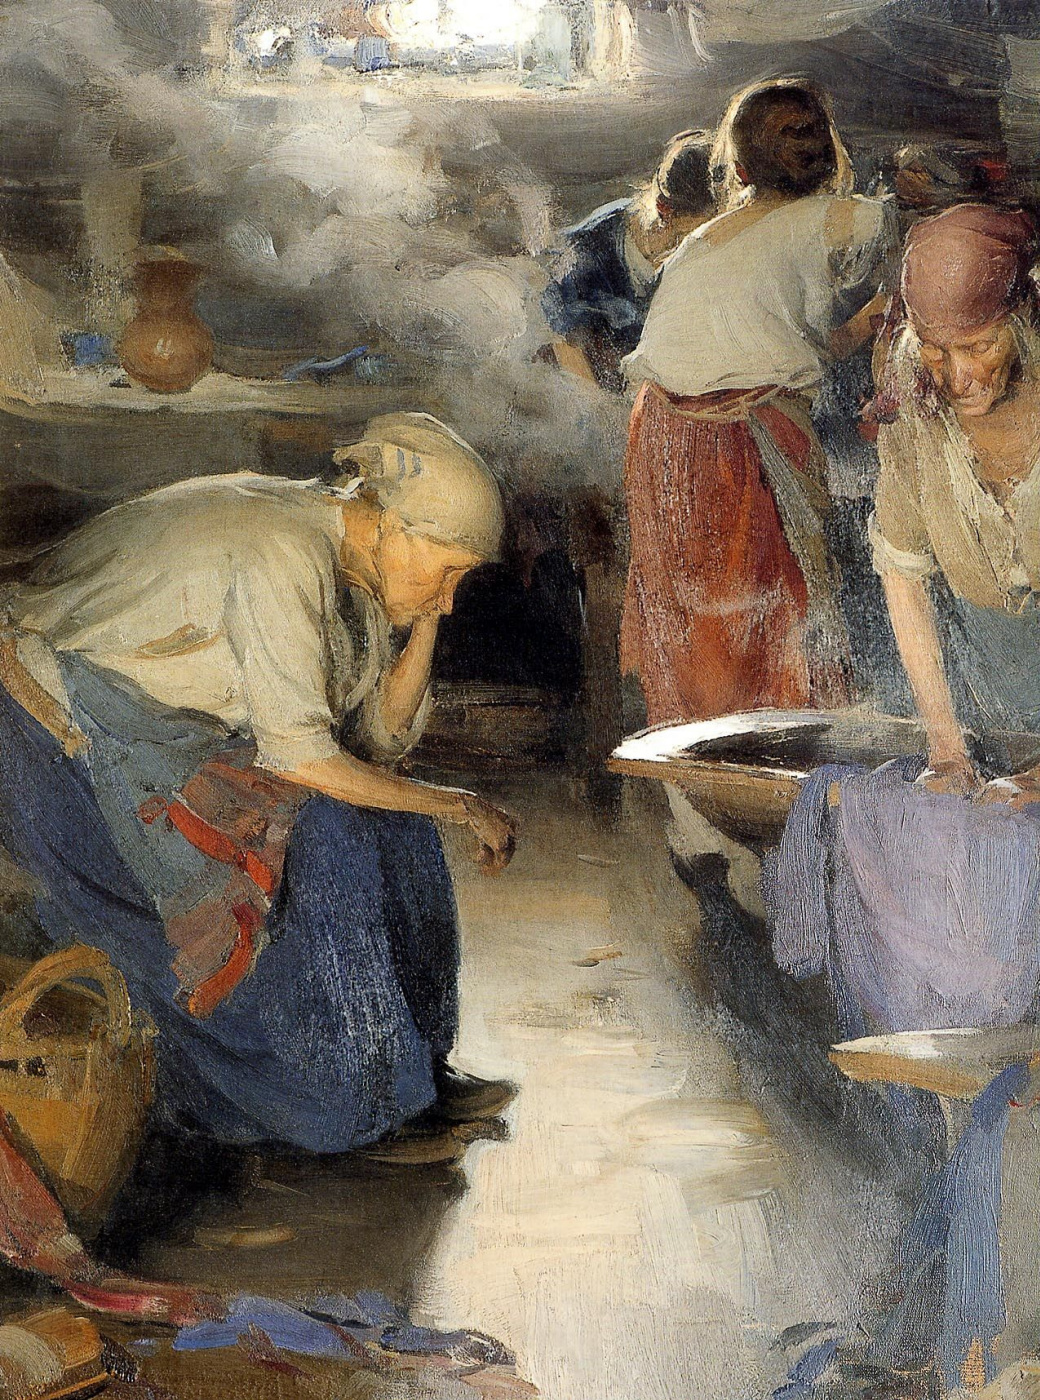 Abram Arkhipov. Laundress